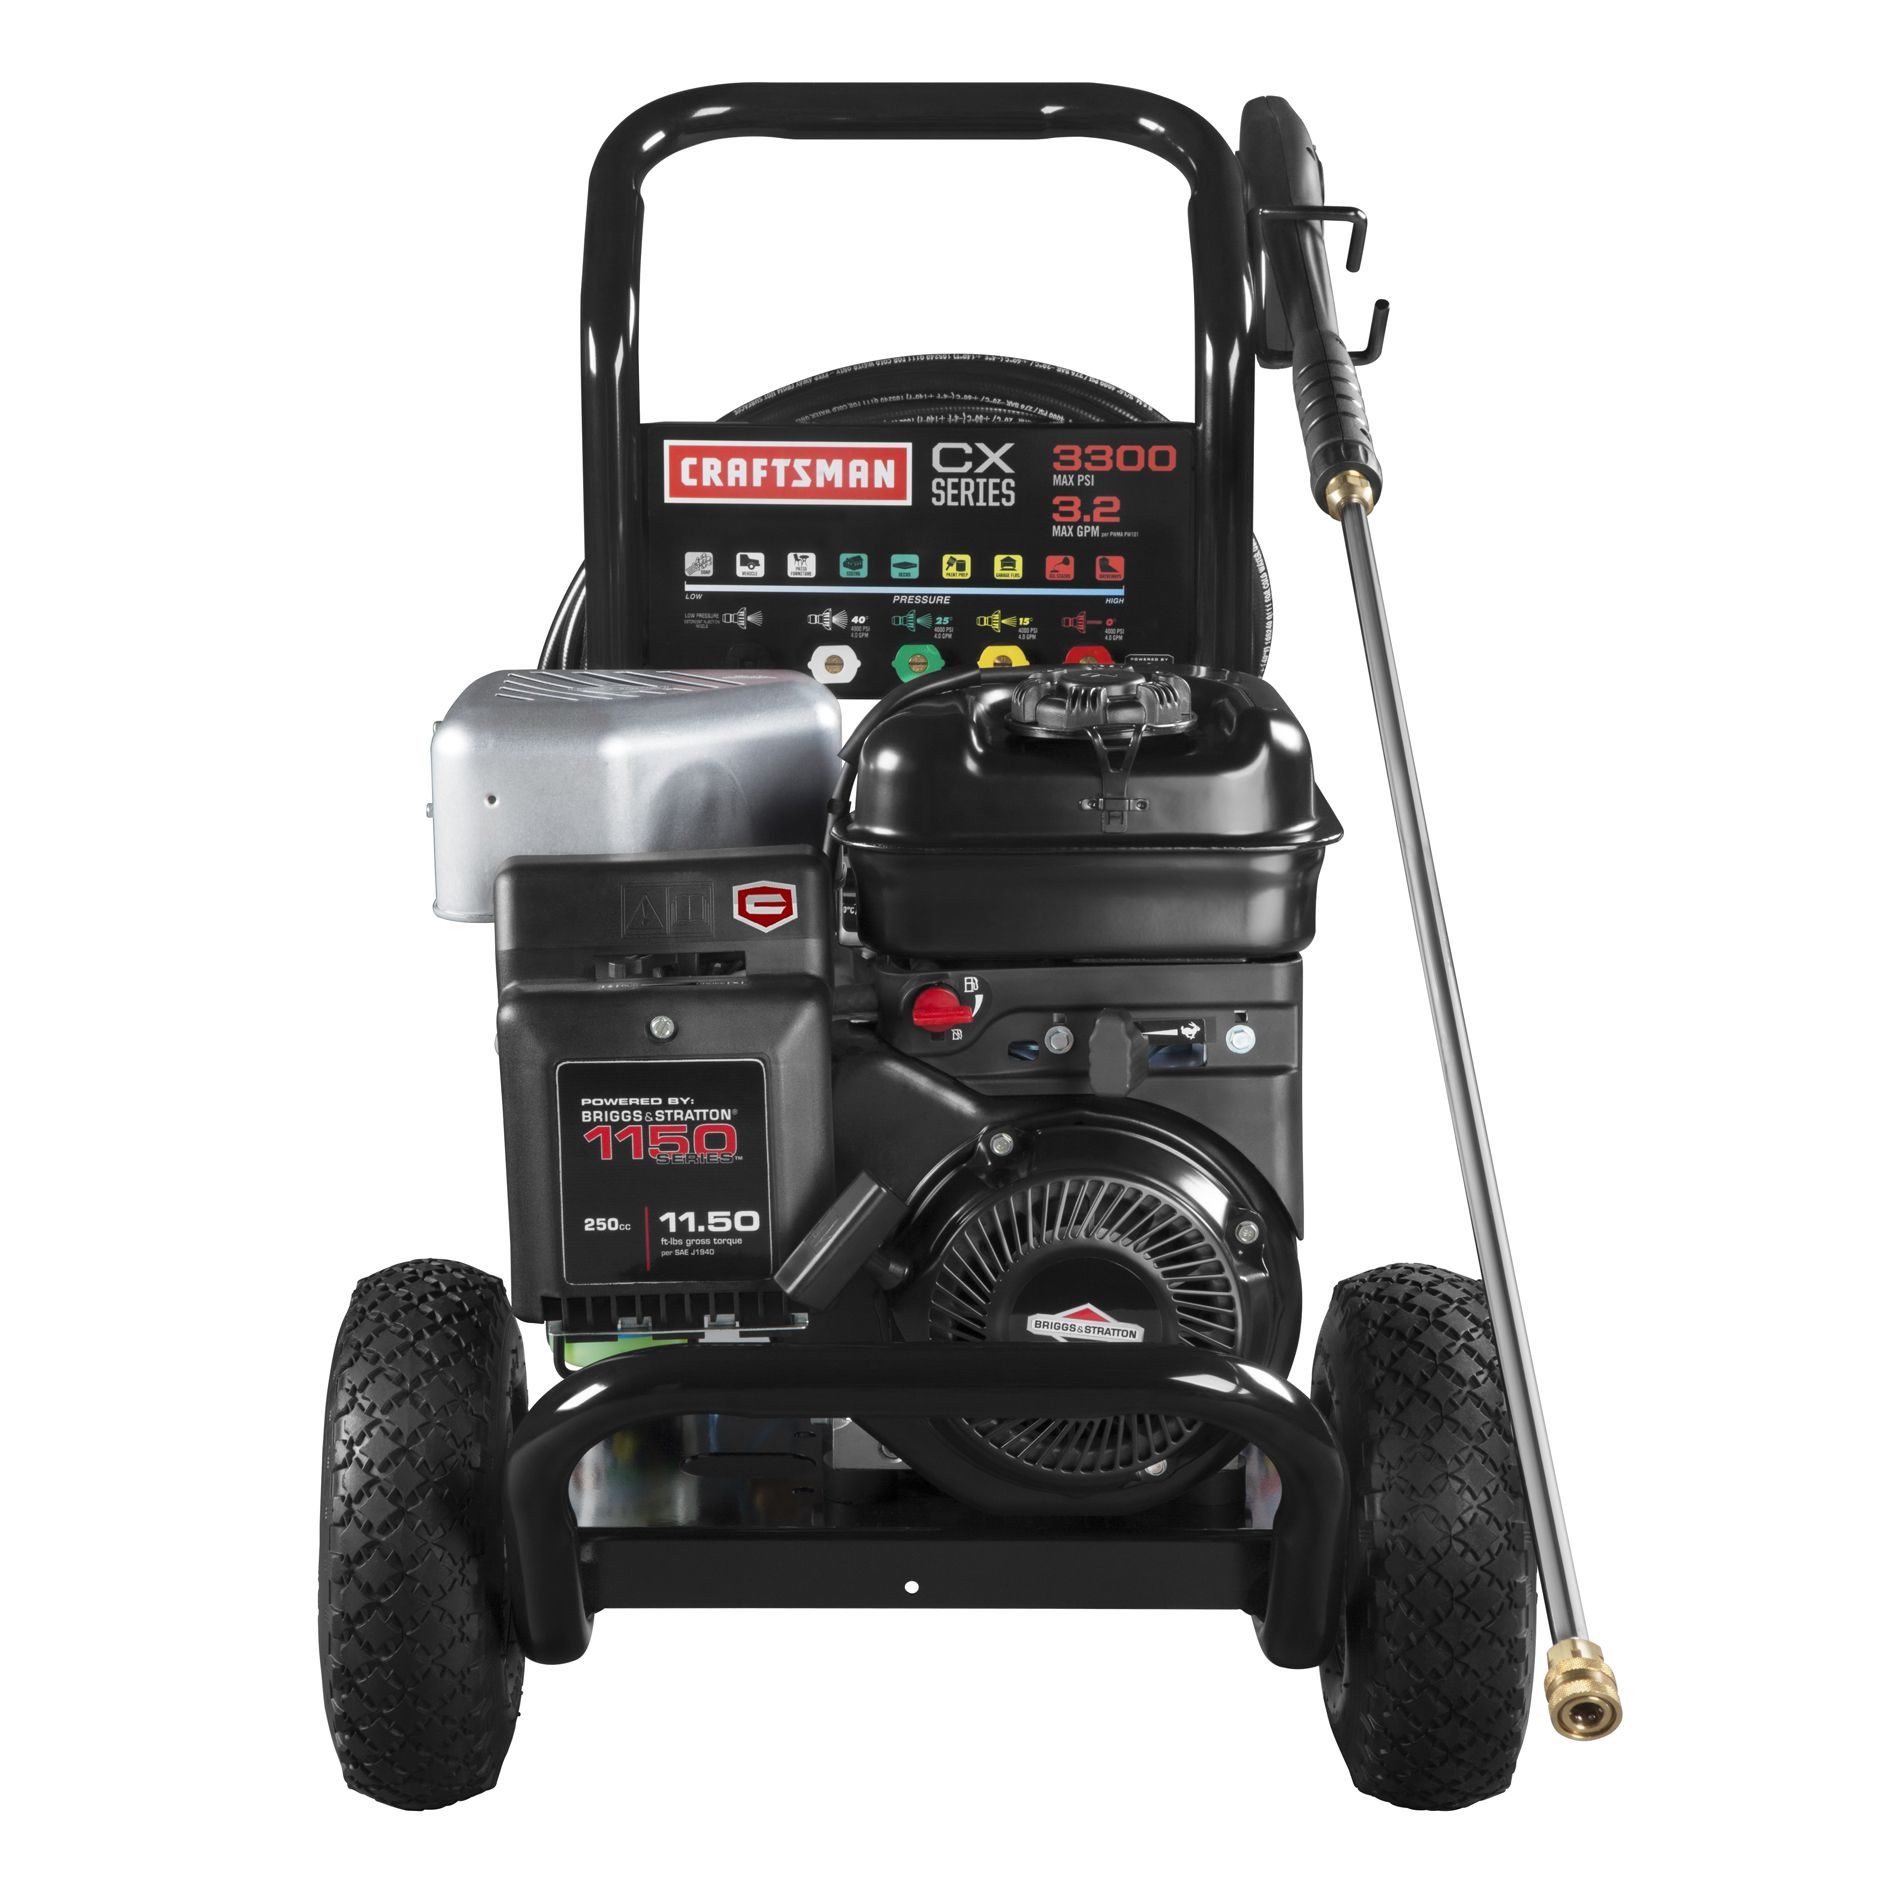 Craftsman 3,300 PSI 3.2GPM Gas Powered Pressure Washer